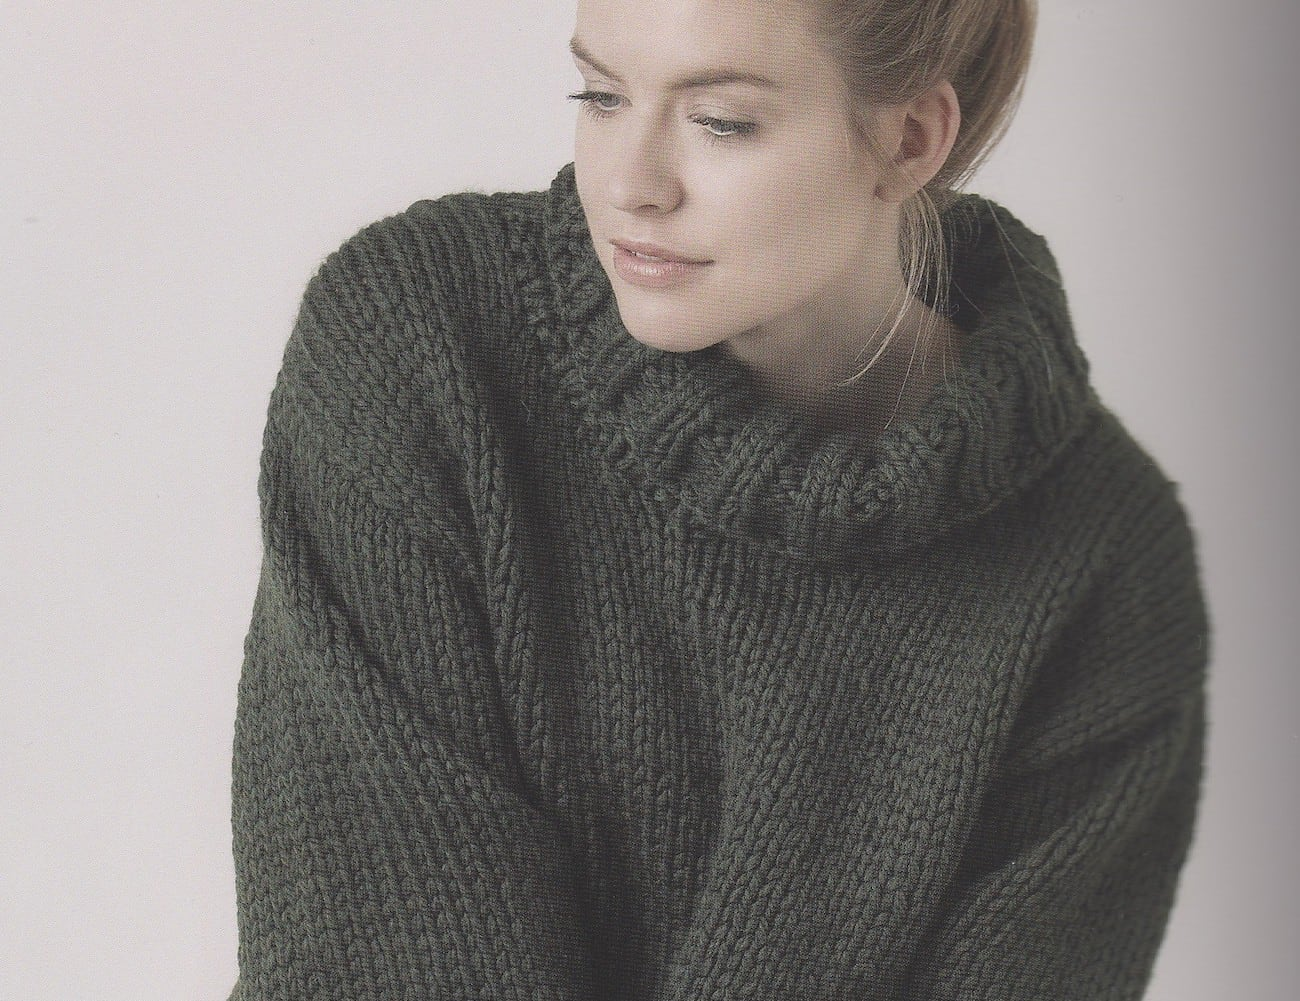 WILDSILK Wool Winter Clothing and Accessories